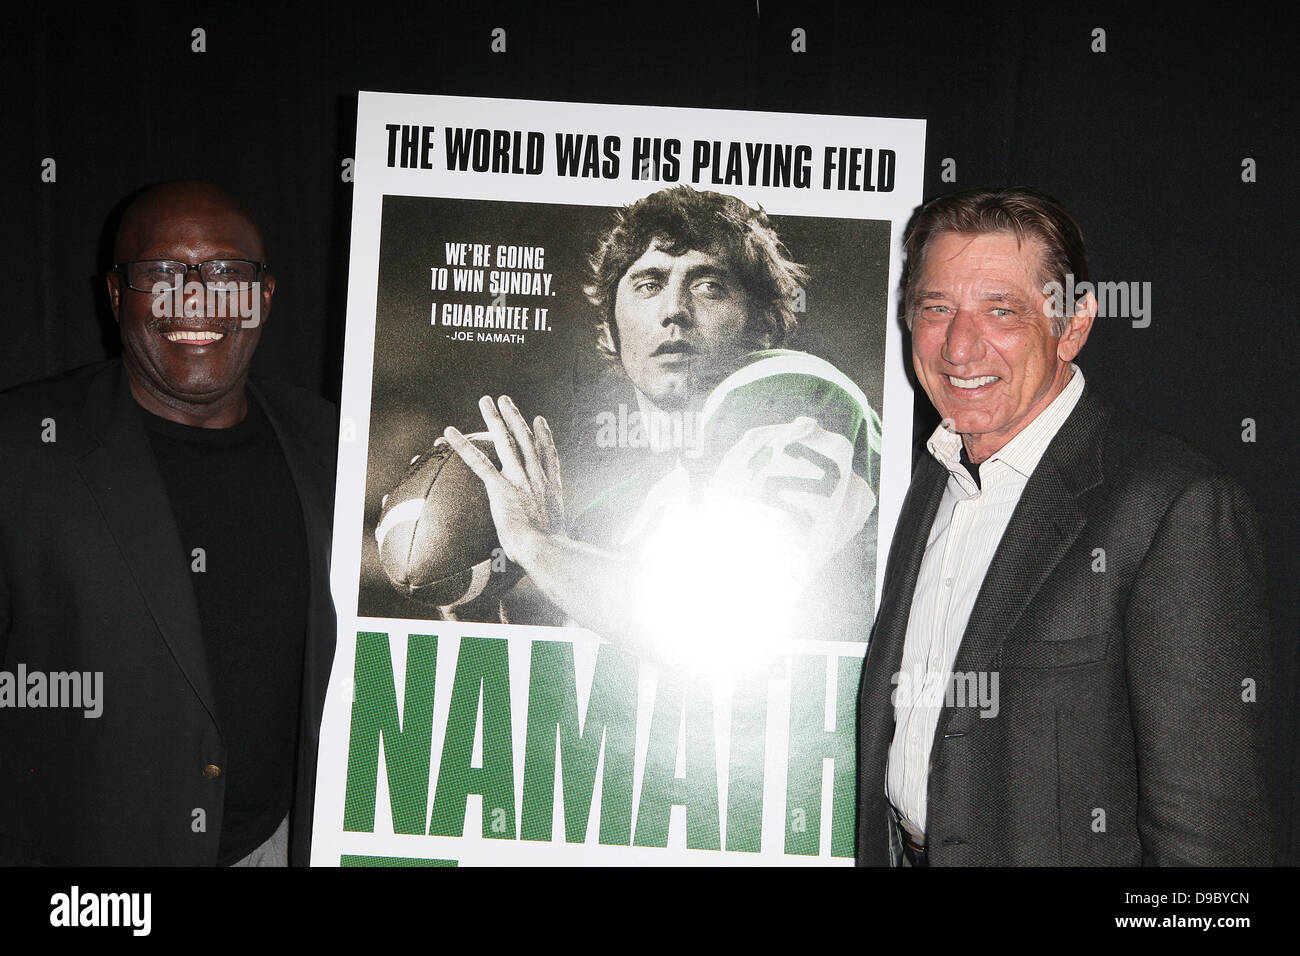 Emerson Boozer, Former JET, Joe Namath, at the premiere of 'Namath' at the HBO theatre New York City, USA - Stock Image